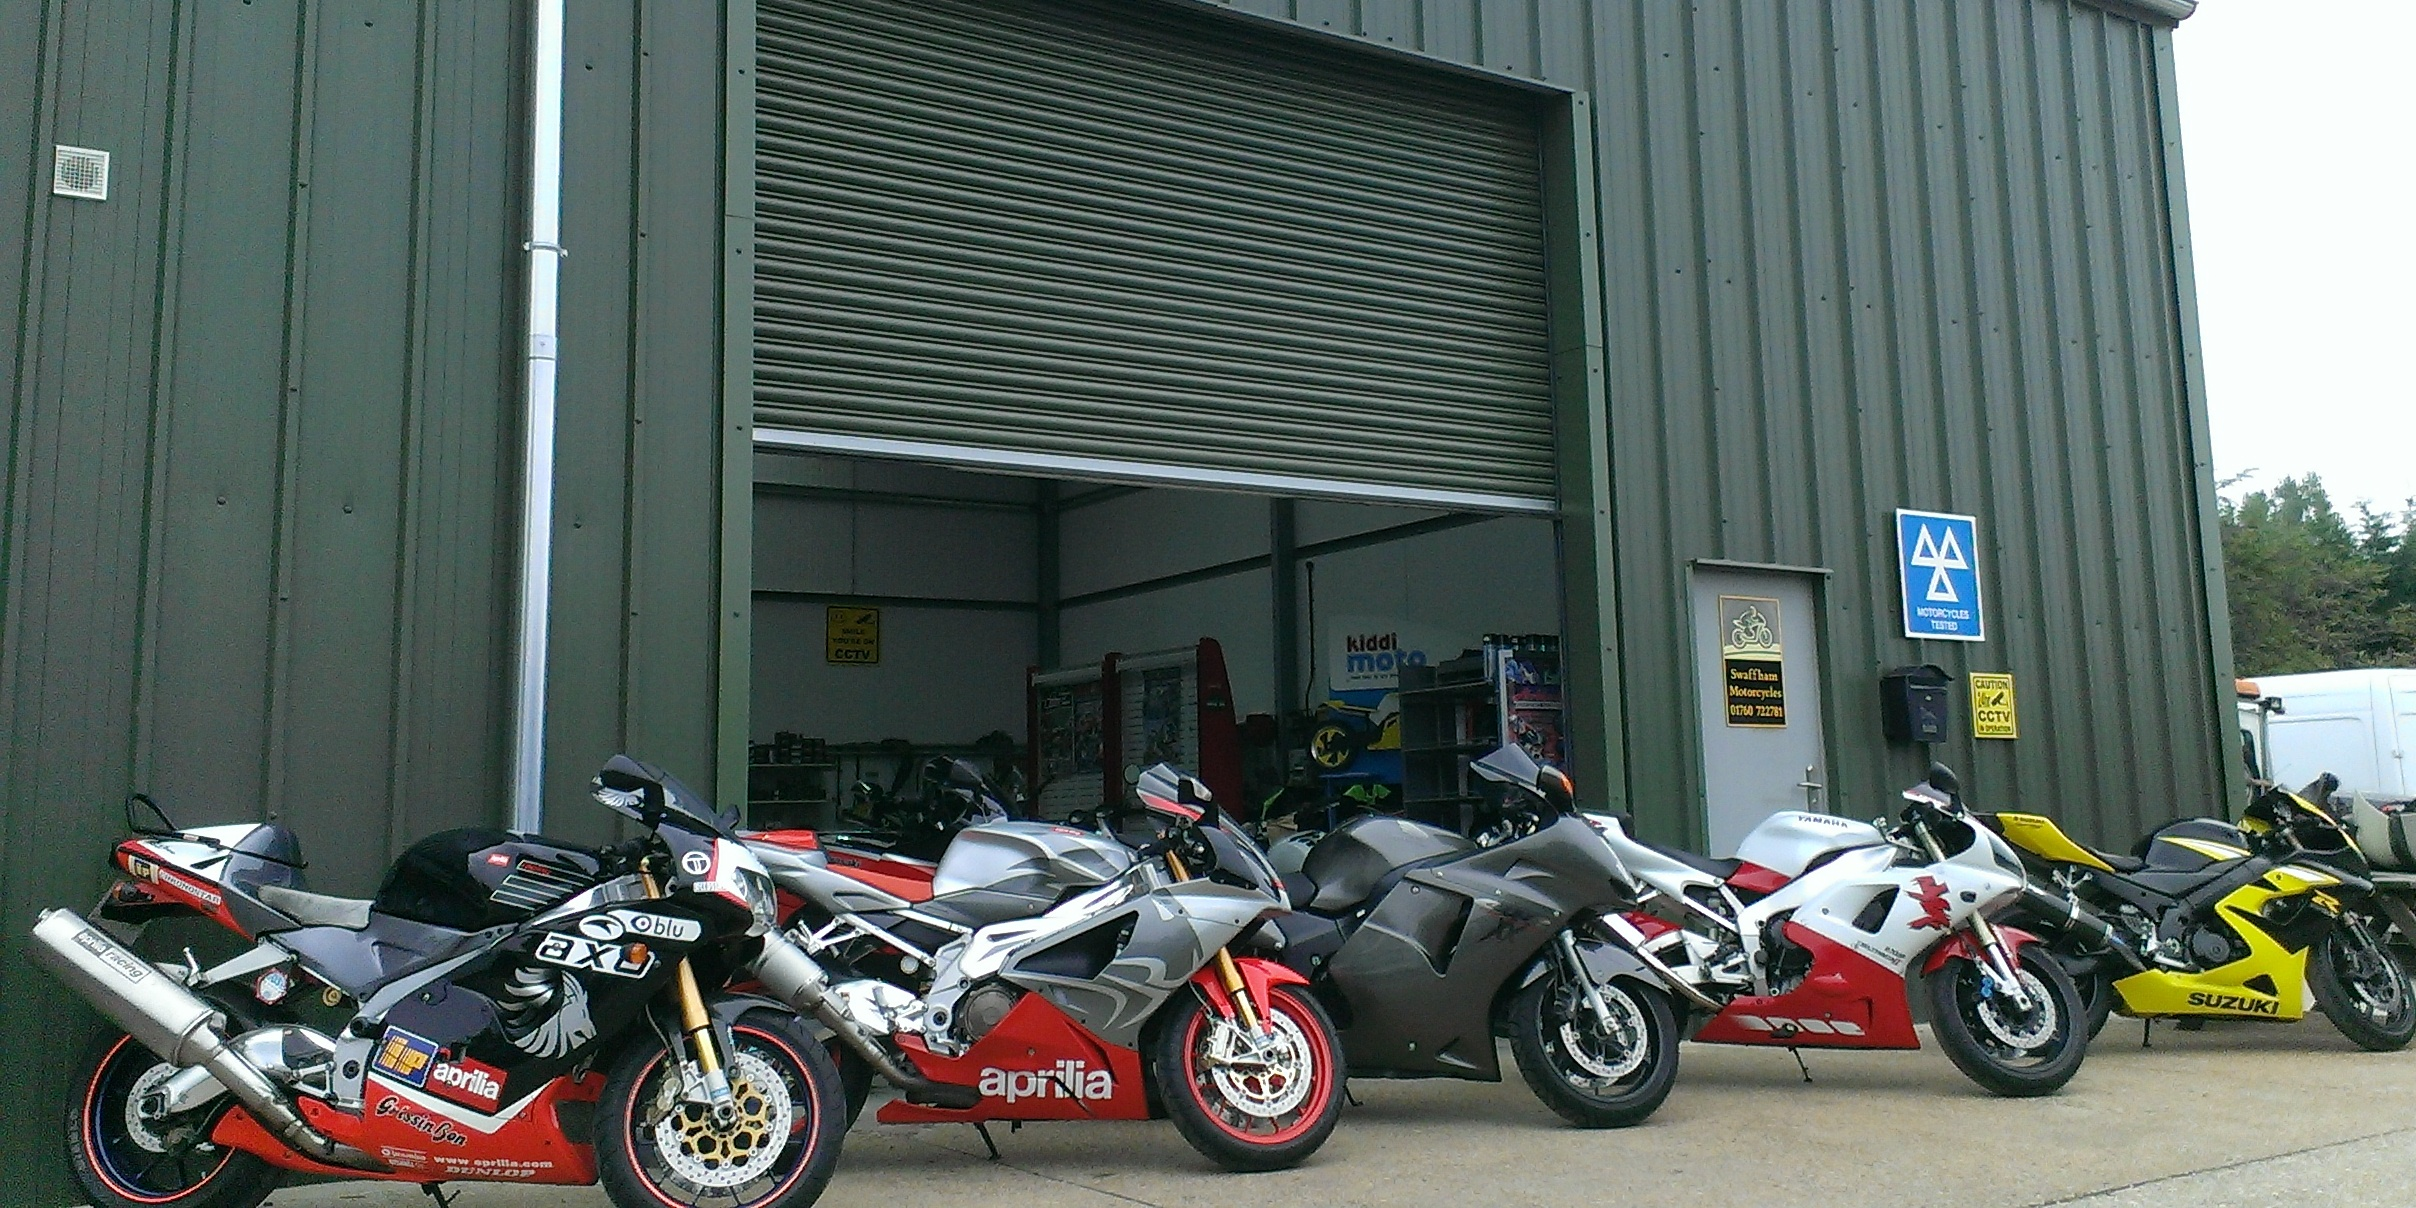 Welcome to Swaffham Motorcycles